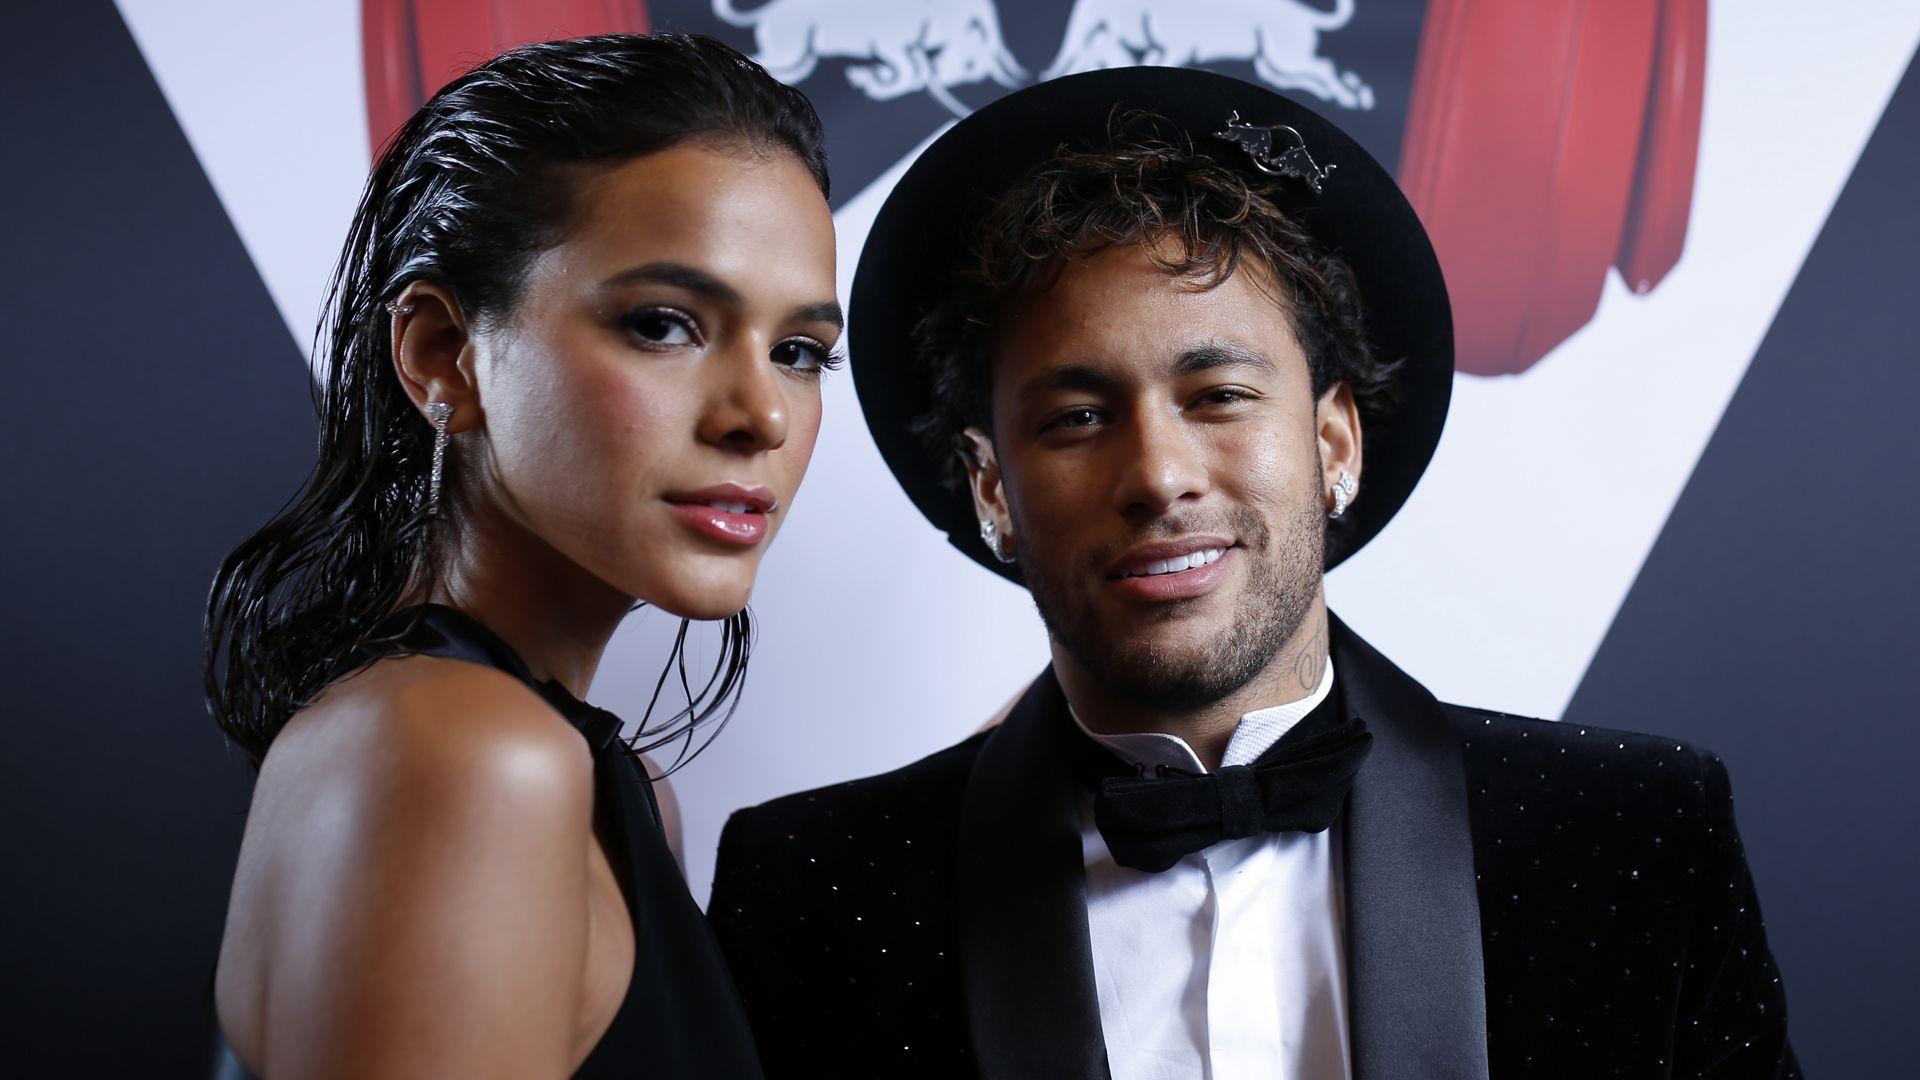 Neymar Bruna Marquezine 2018 Birthday party 04022018